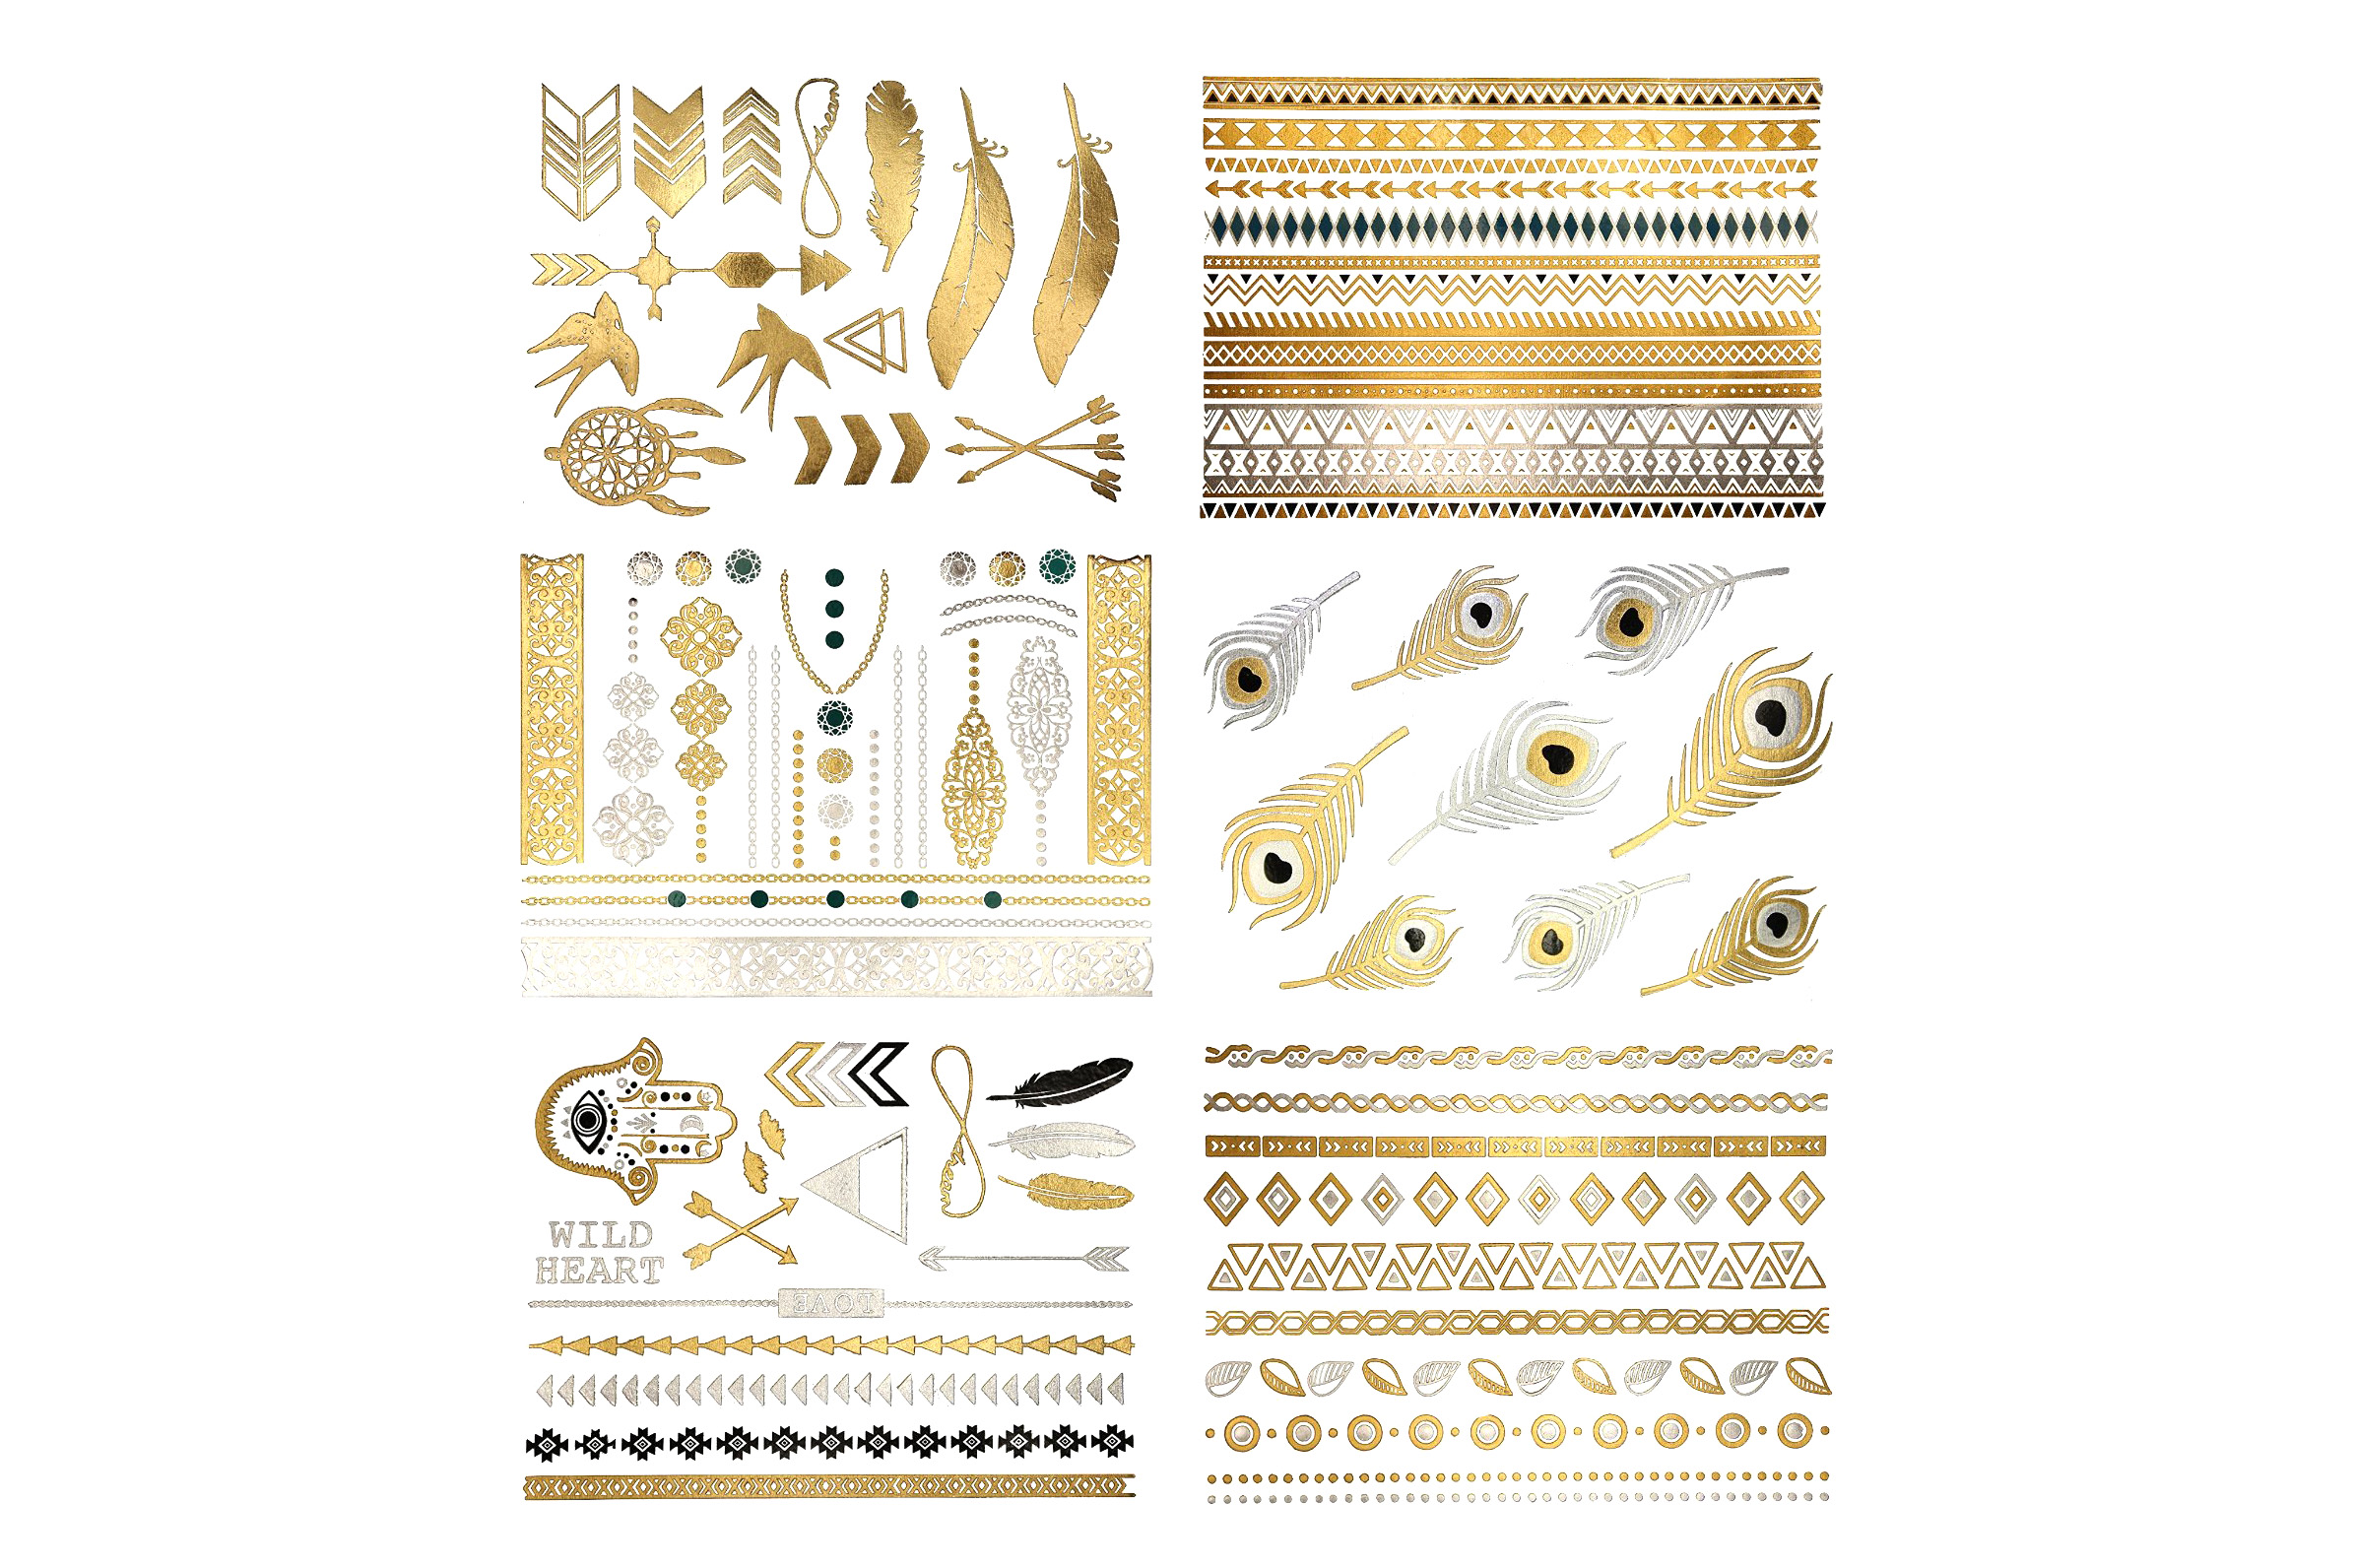 Gold / Silver Flash Tattoos - 4.5 stars - $10 (Prime)